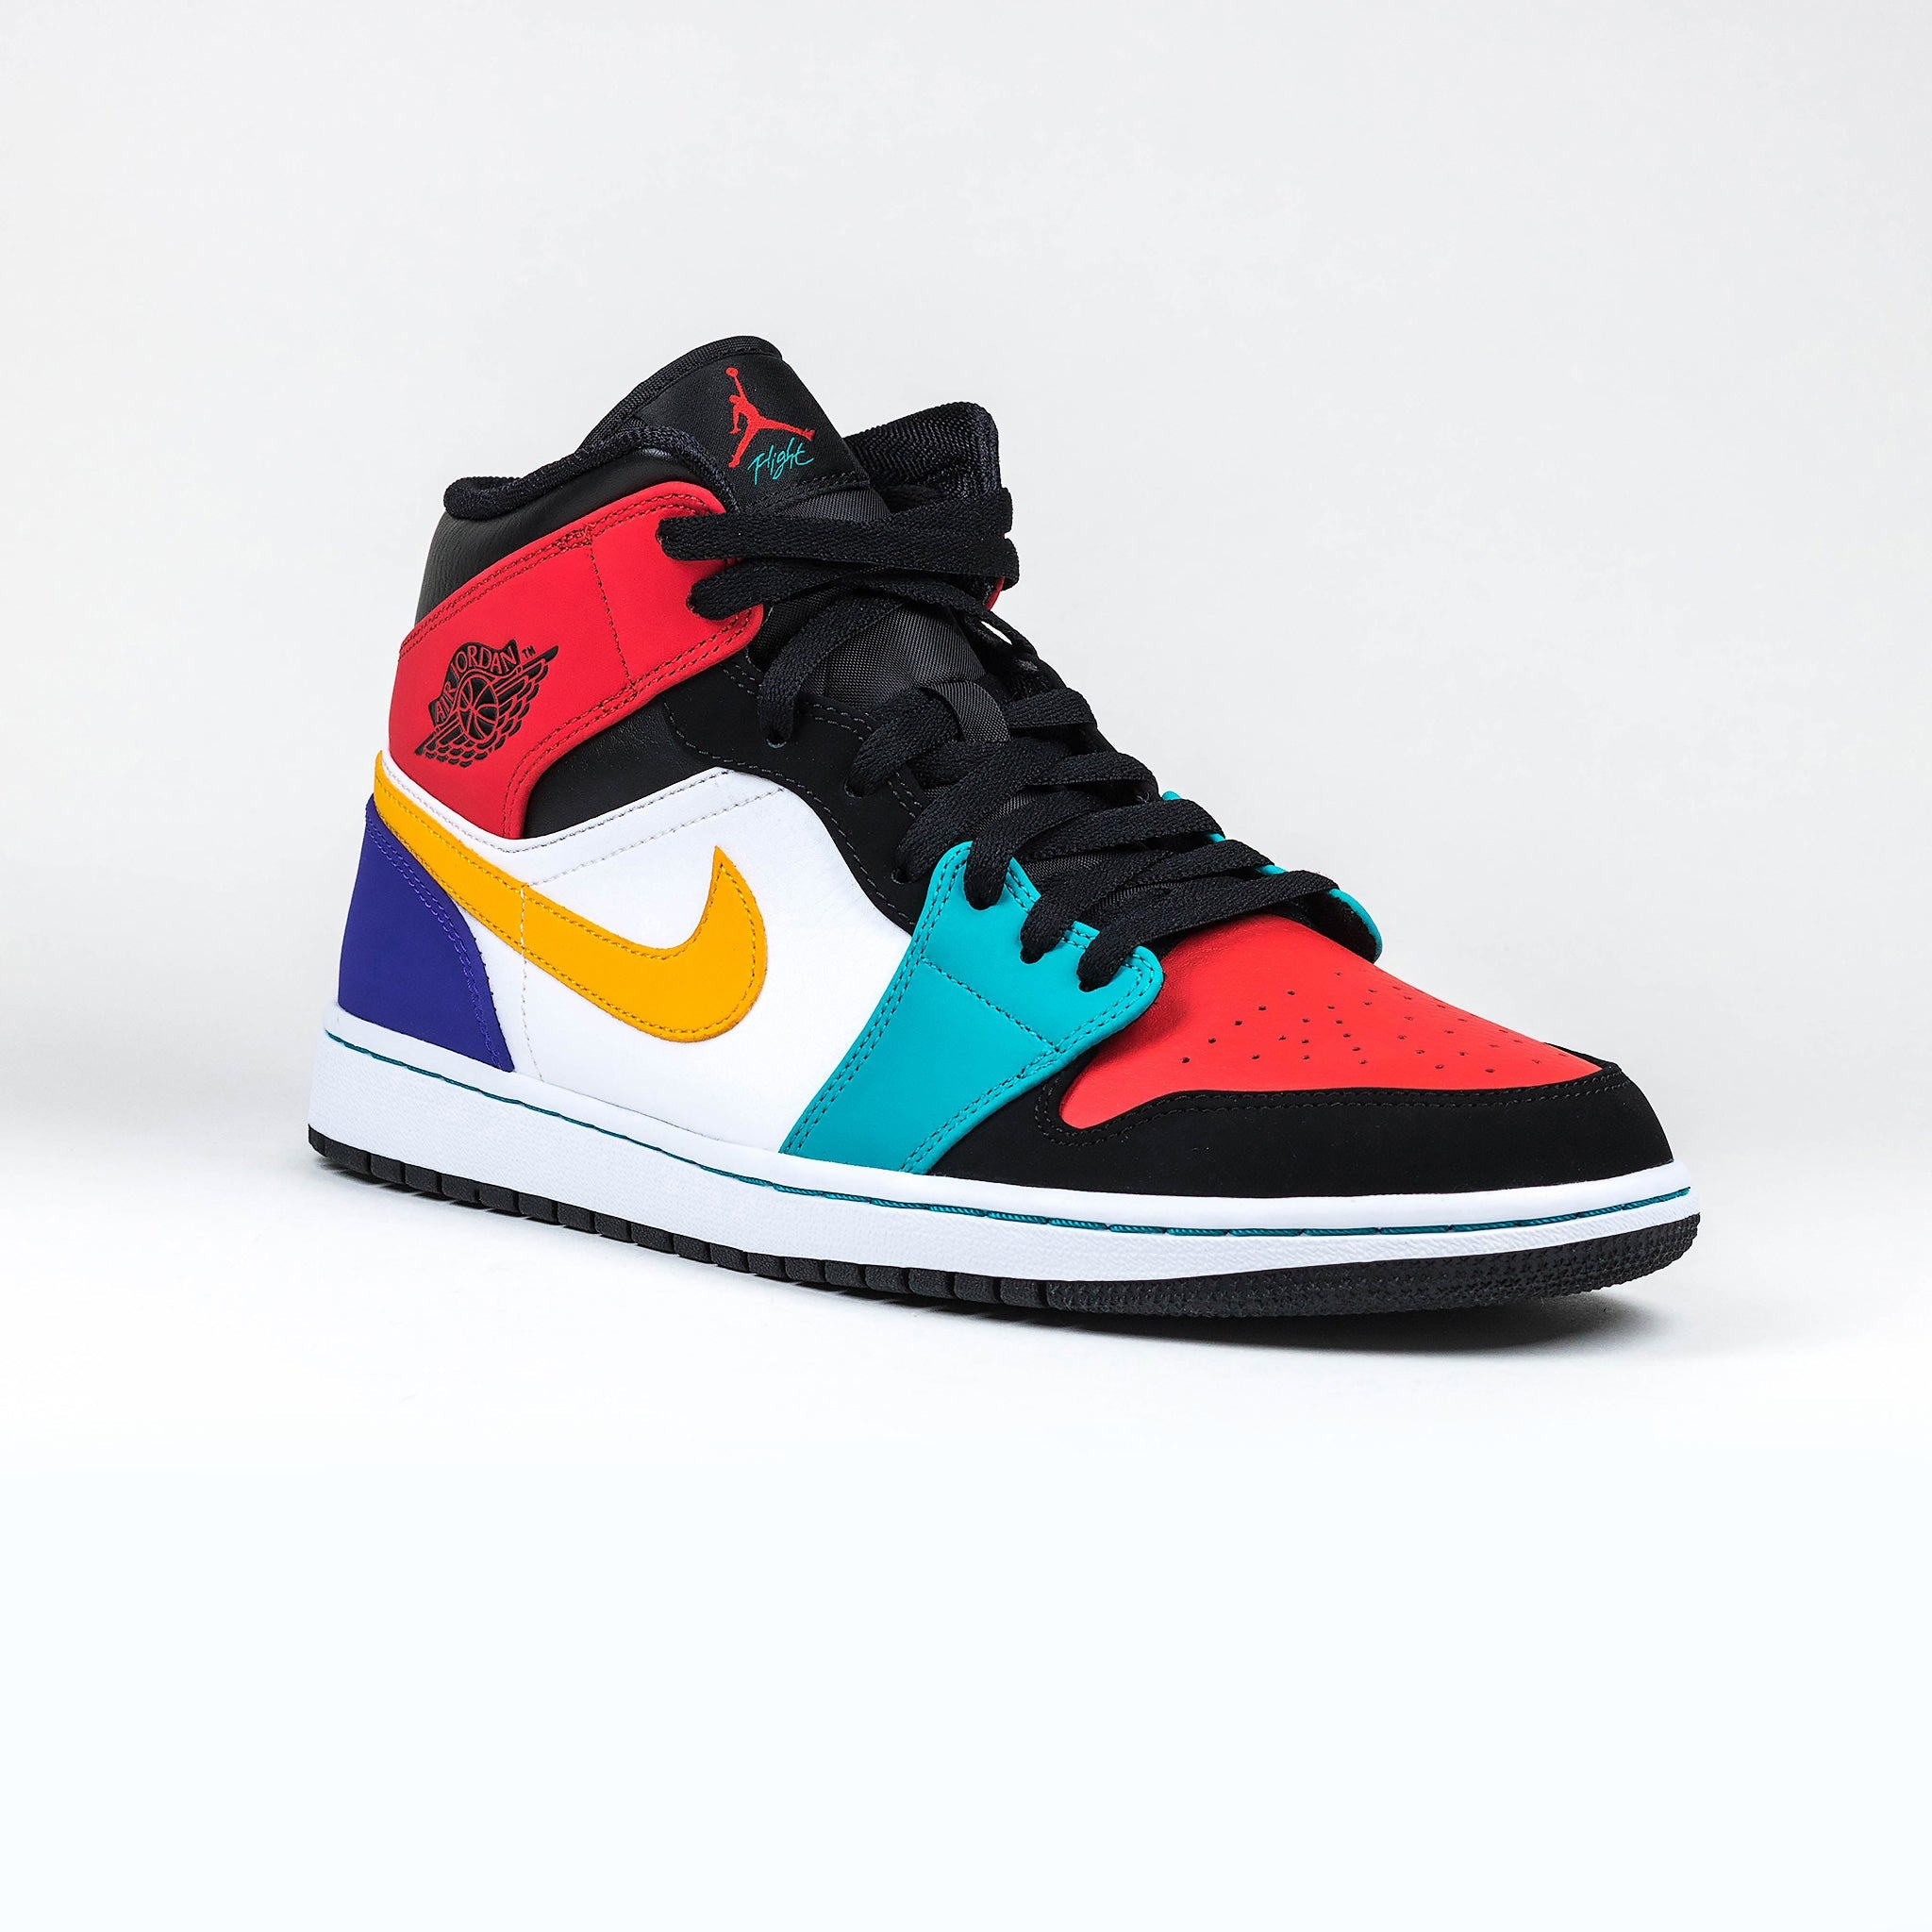 06259a4fd Nike Air Jordan 1 Mid Bred Multi Color Sneaker – Crepslocker